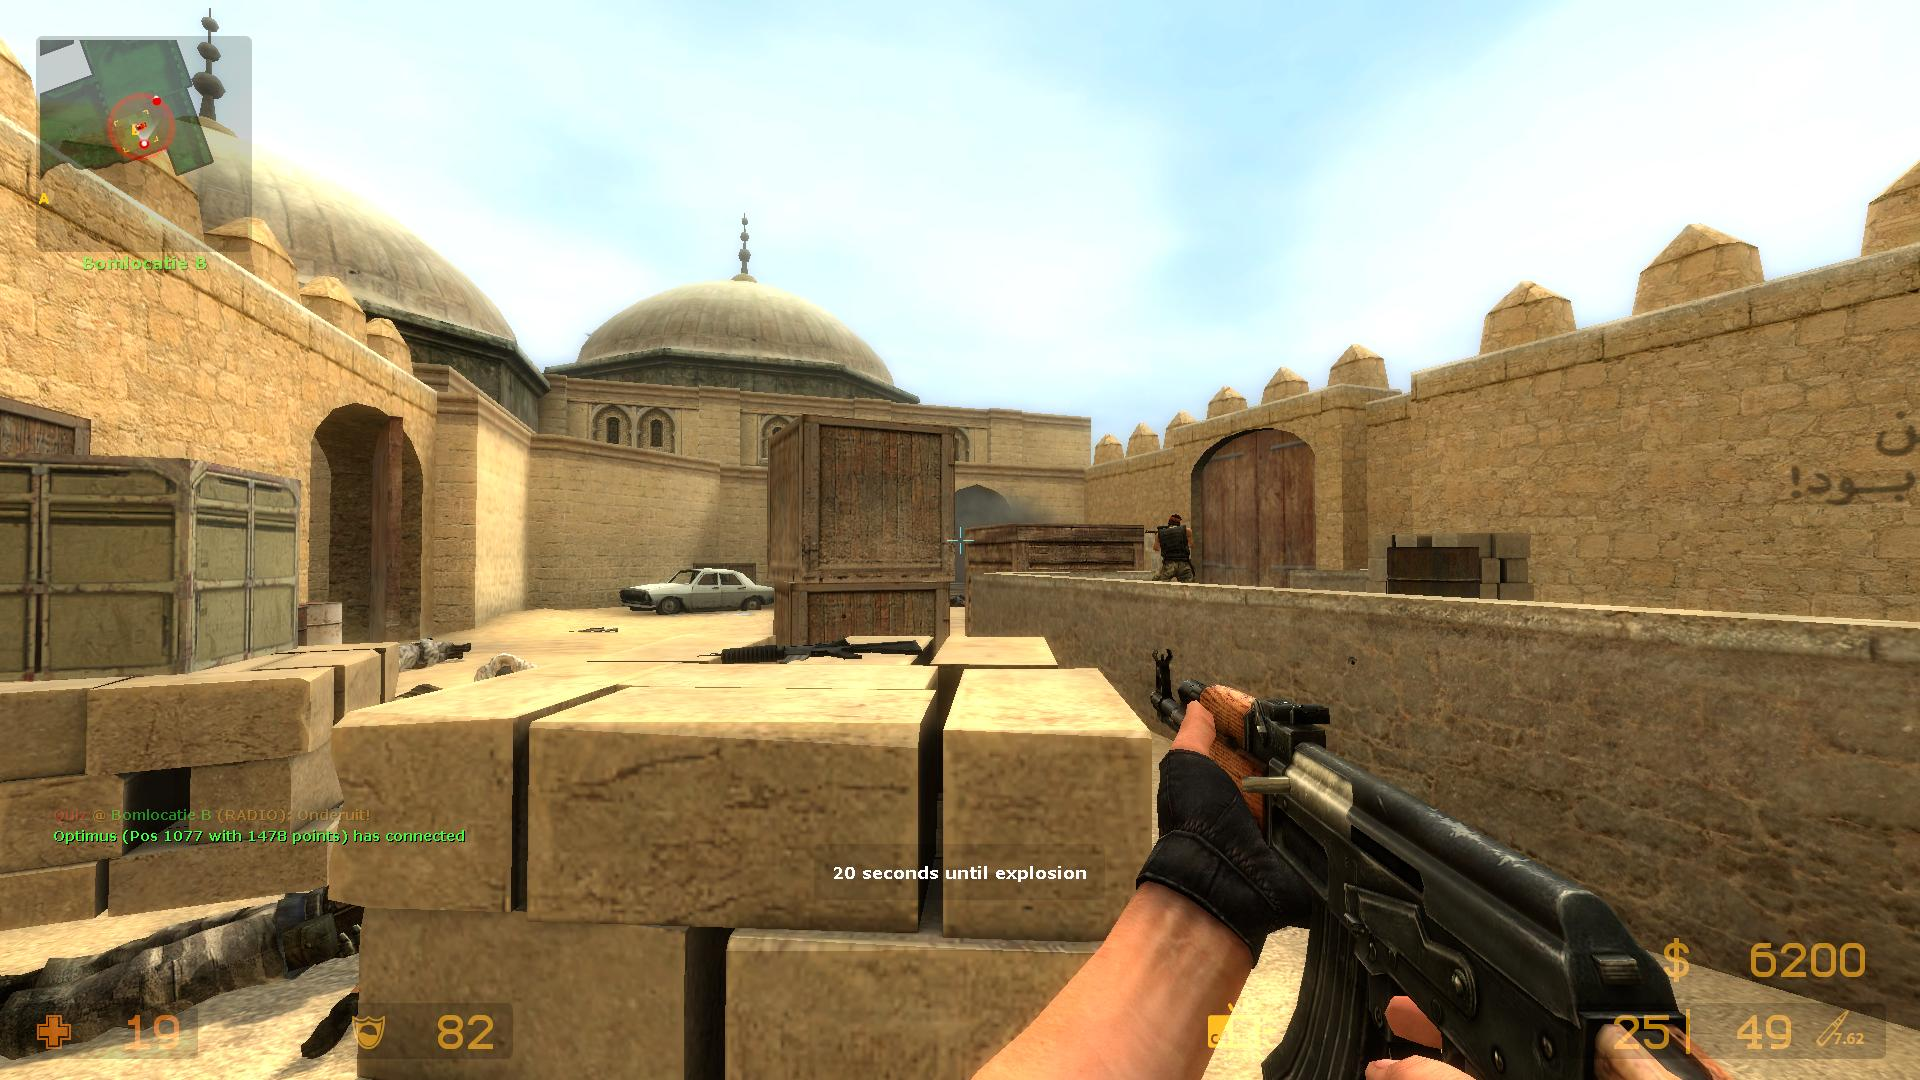 Counter-strike, a first-person shooter